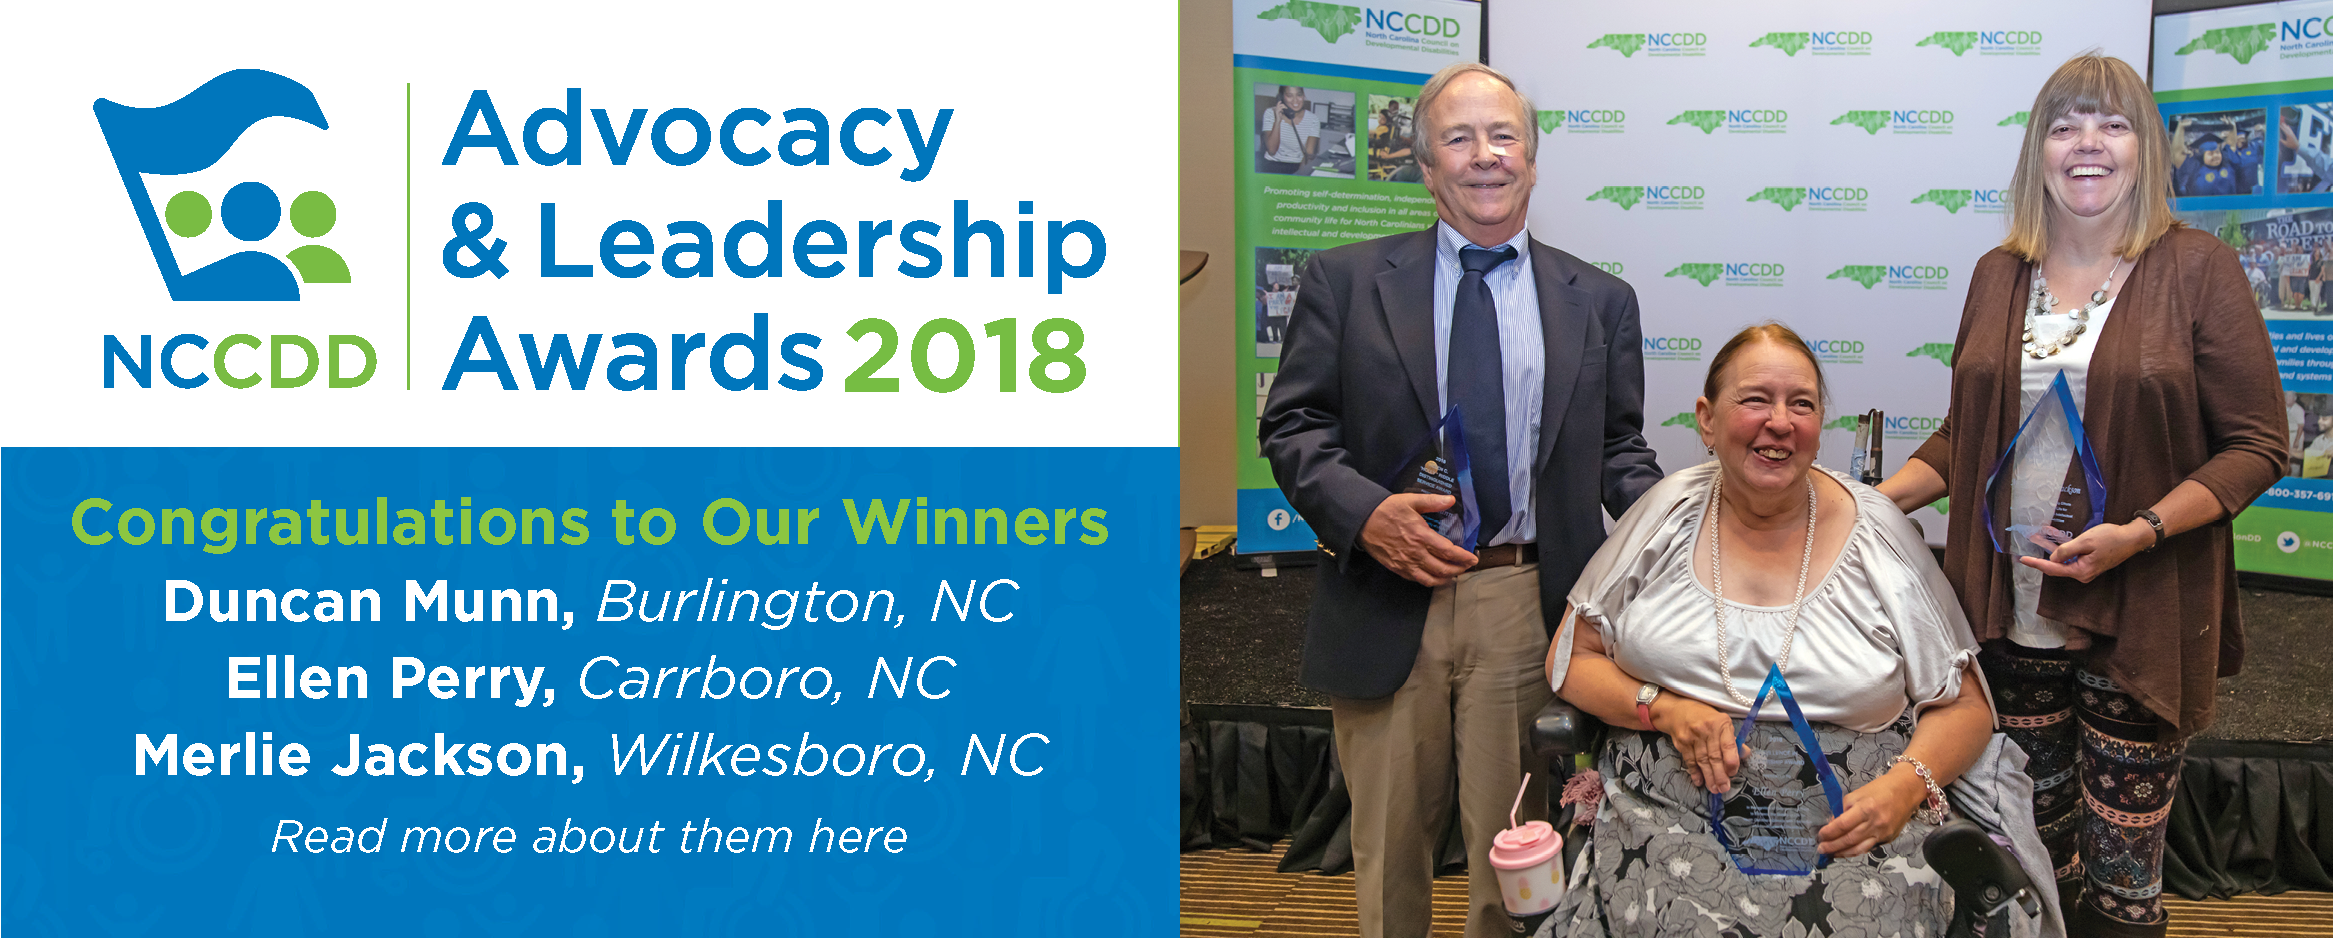 Congratulations to our 2018 Advocacy & Leadership Award Winners - Duncan Munn, Burlington, NC, Ellen Perry, Carrboro, NC, Merlie Jackson, Wilkesboro, NC